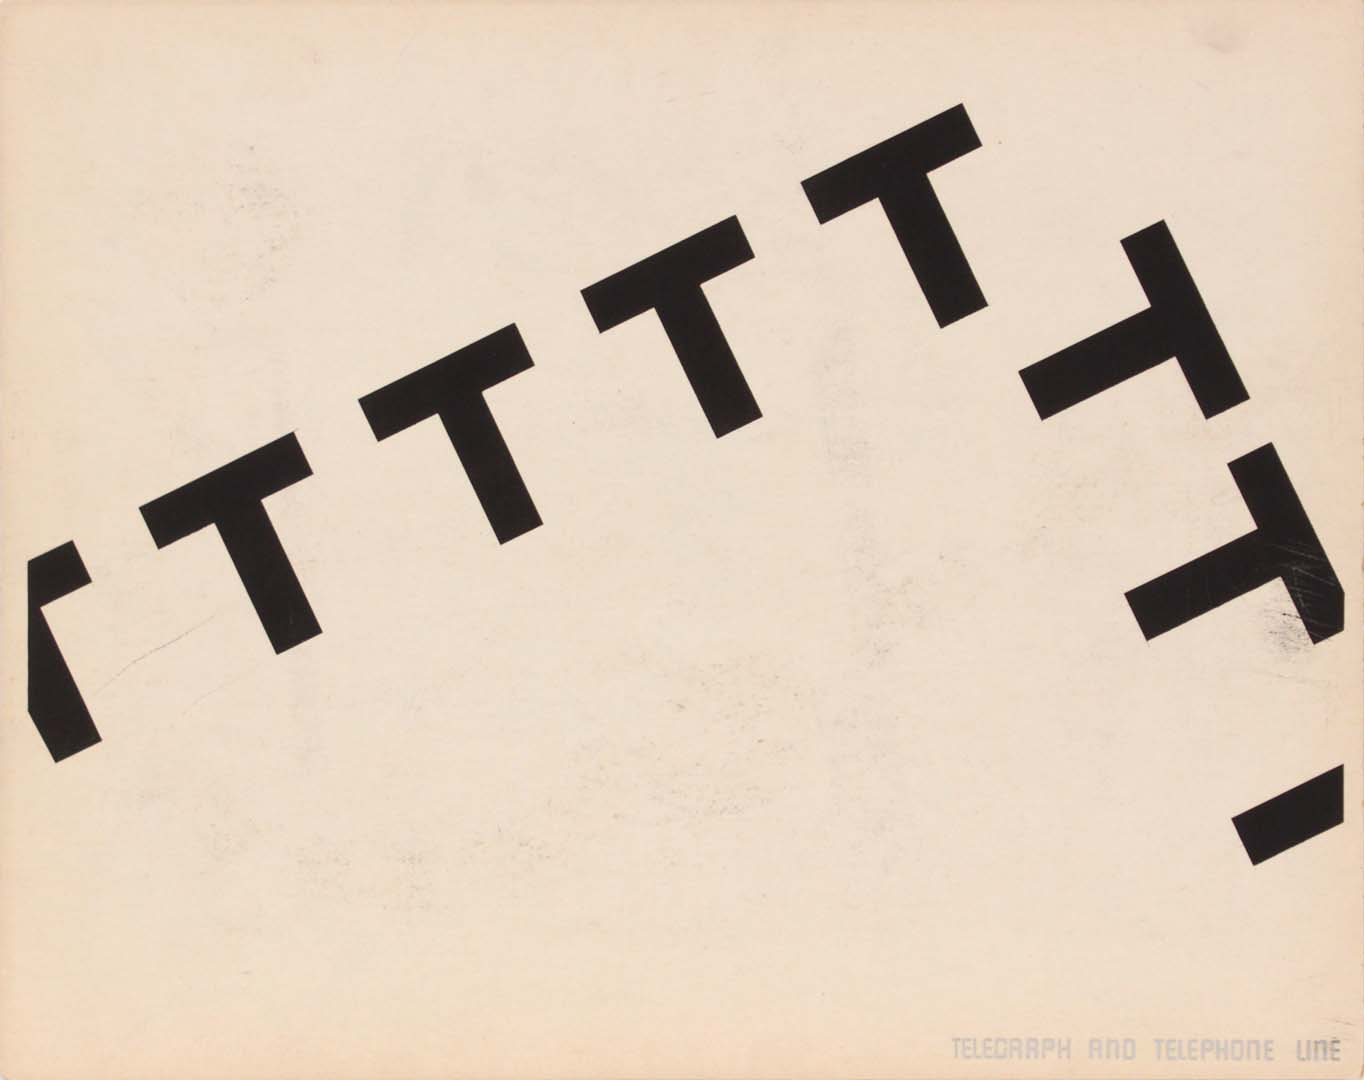 1944 Image 60 (Front Telegraph and Telephone Line) Silkscreen 11 x 14